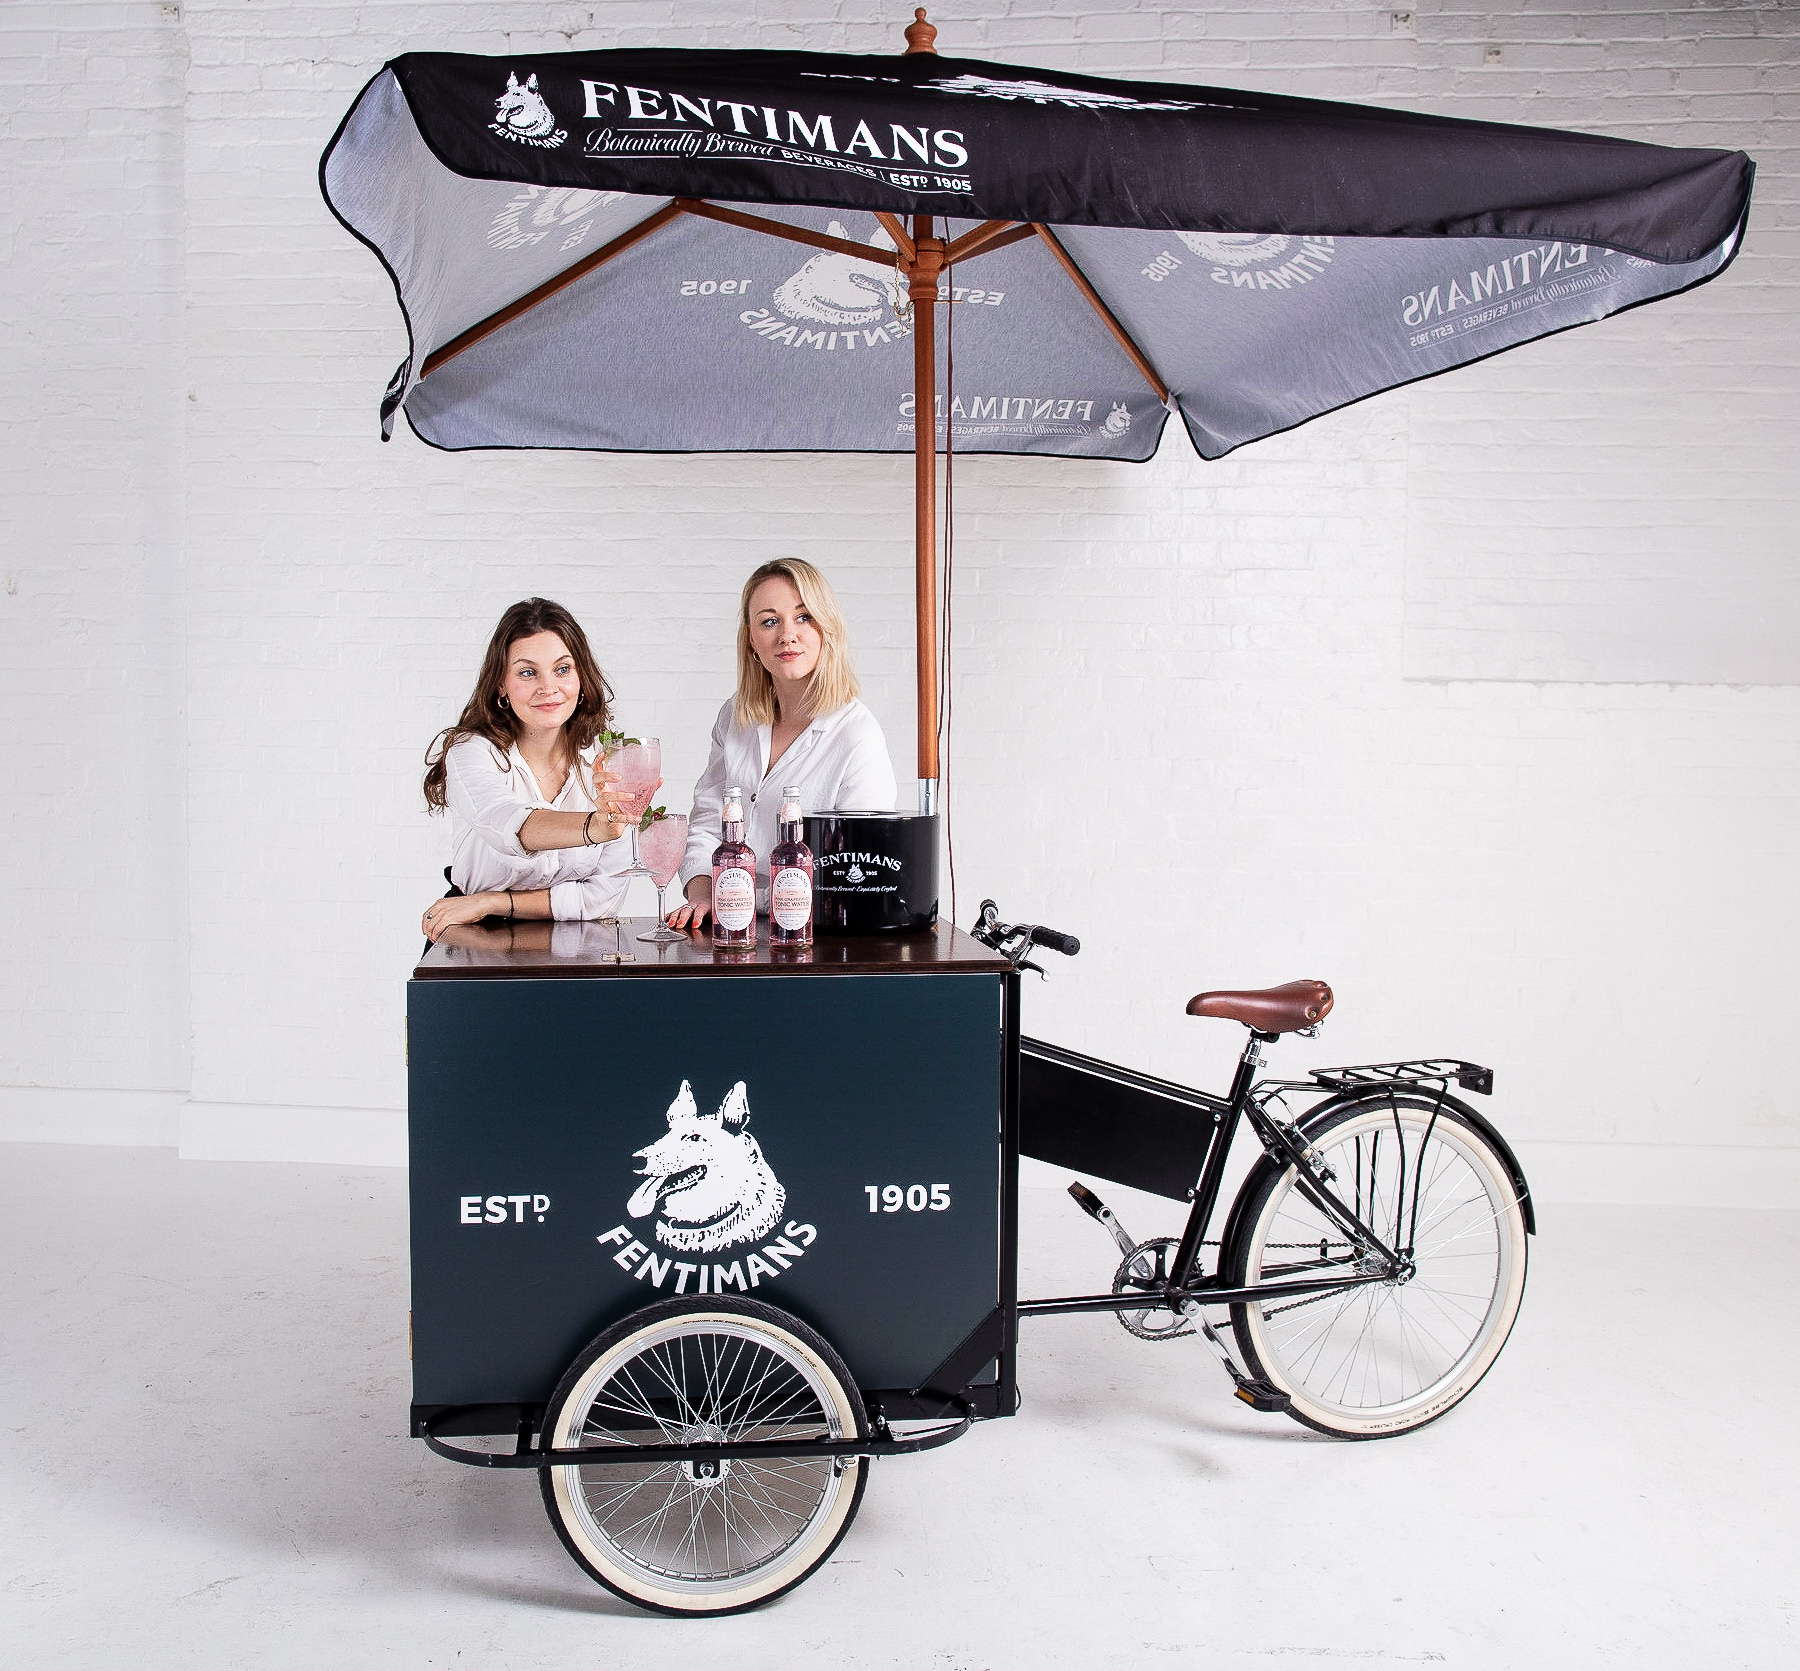 Quirky Group Branded Tricycle Bar for Hire with Brand Ambassadors